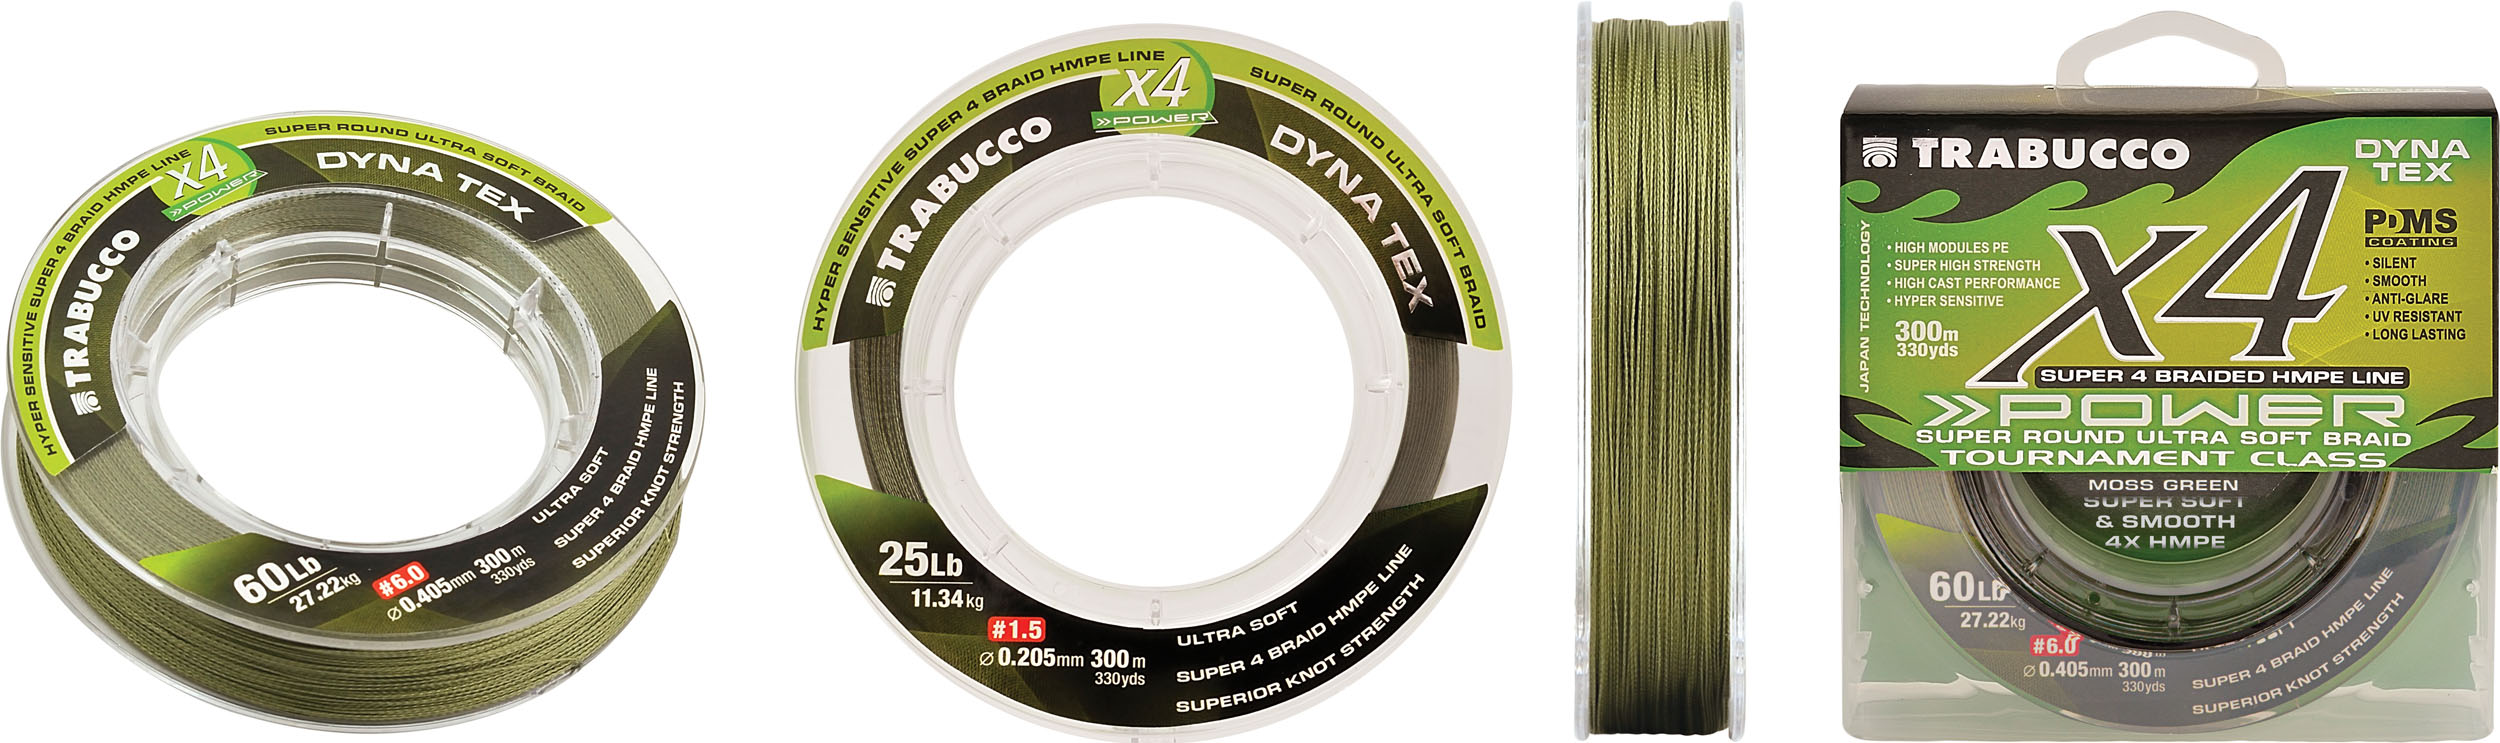 Trabucco Dyna Tex X4 Power 300m 0.405mm MOSS GREEN